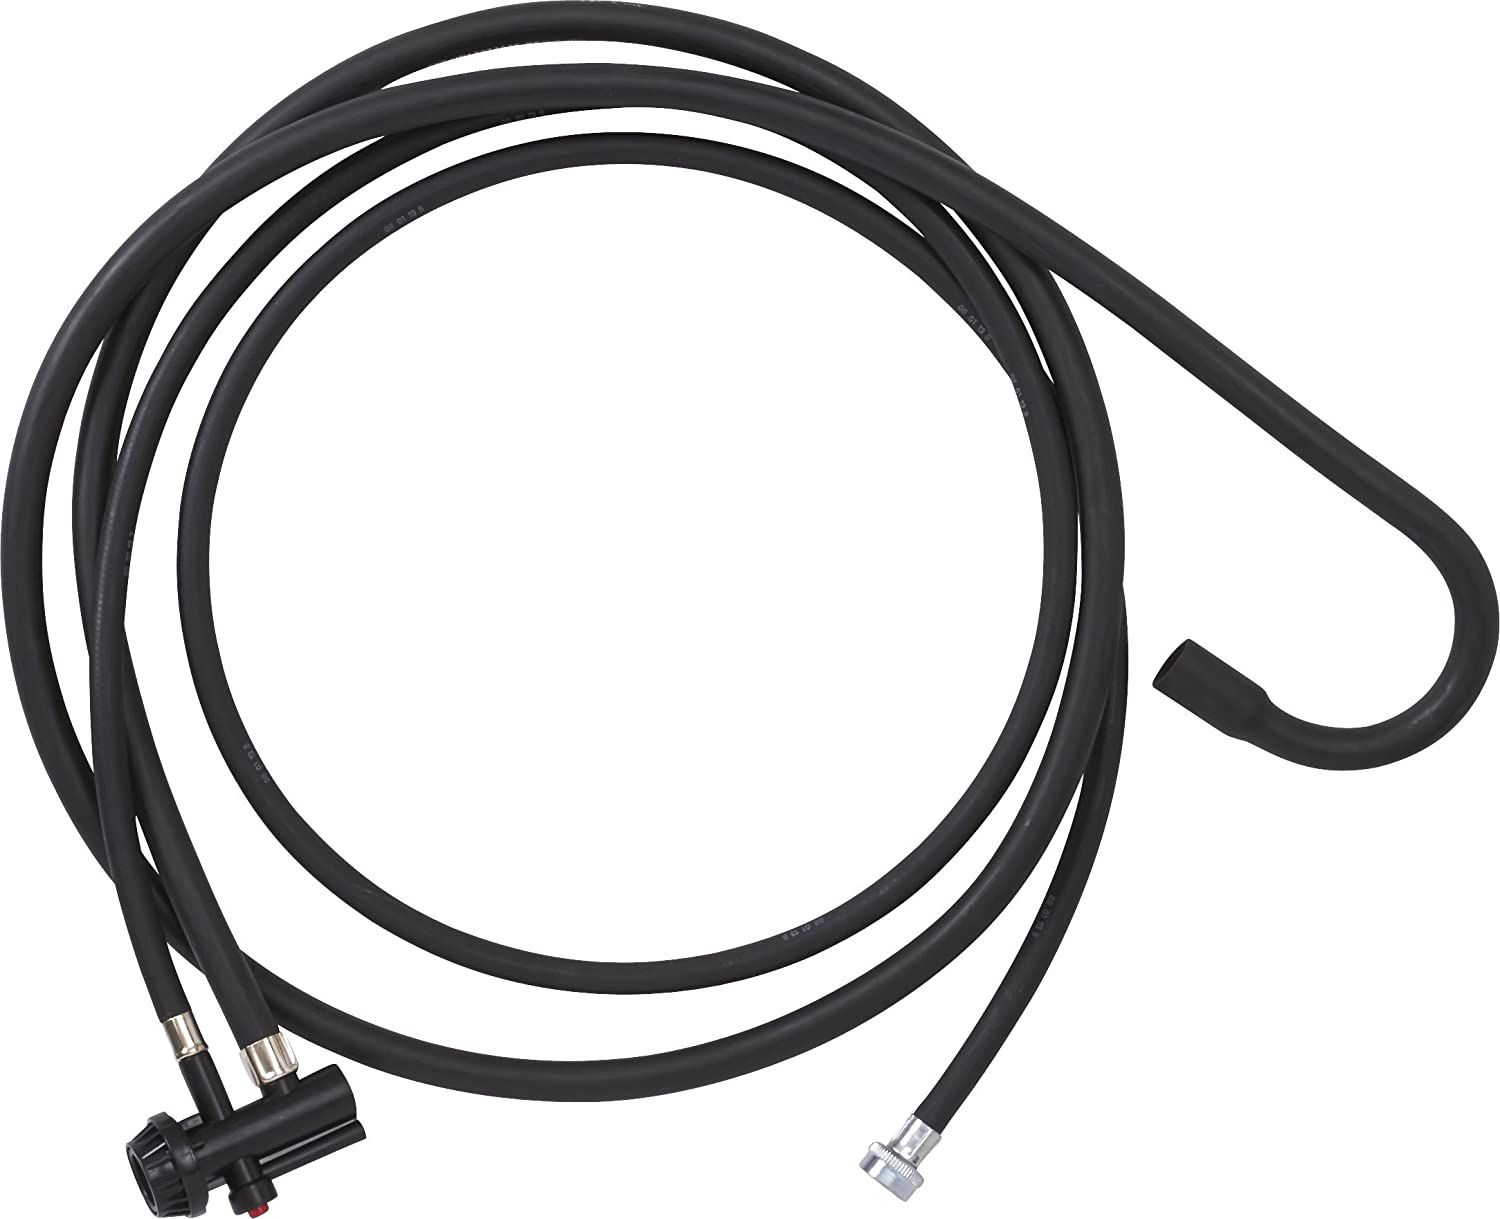 Whirlpool W10273574Drain and Fill Hose Assembly